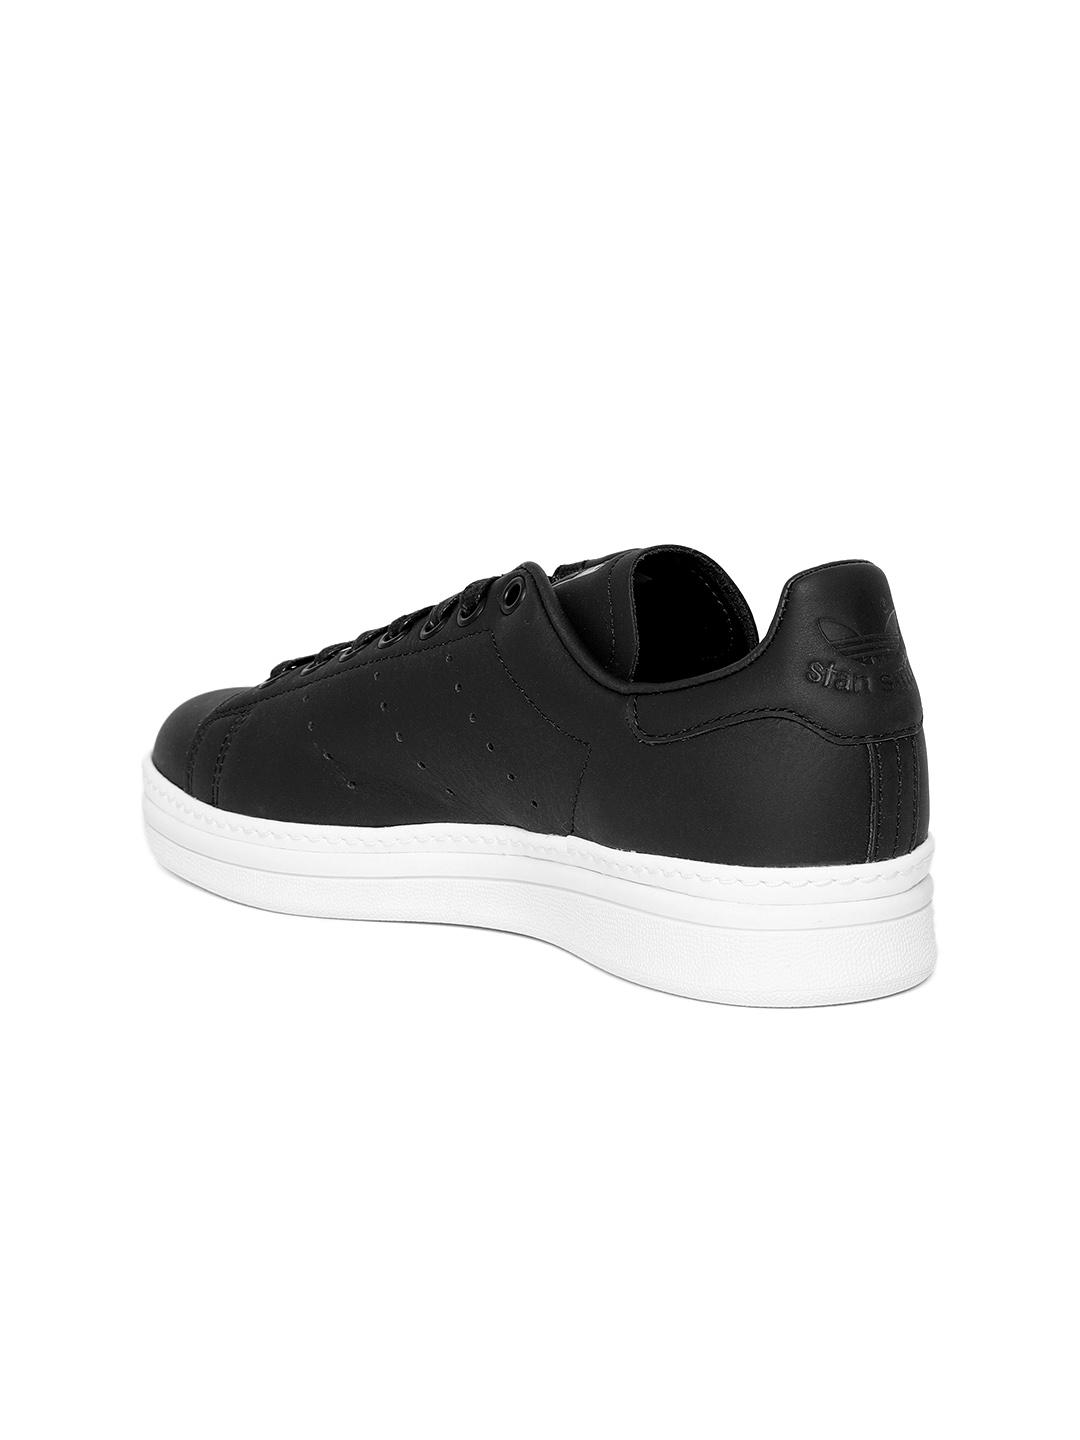 uk availability 9296c eb1d4 Adidas Originals Women Black Stan Smith New Bold Leather Sneakers